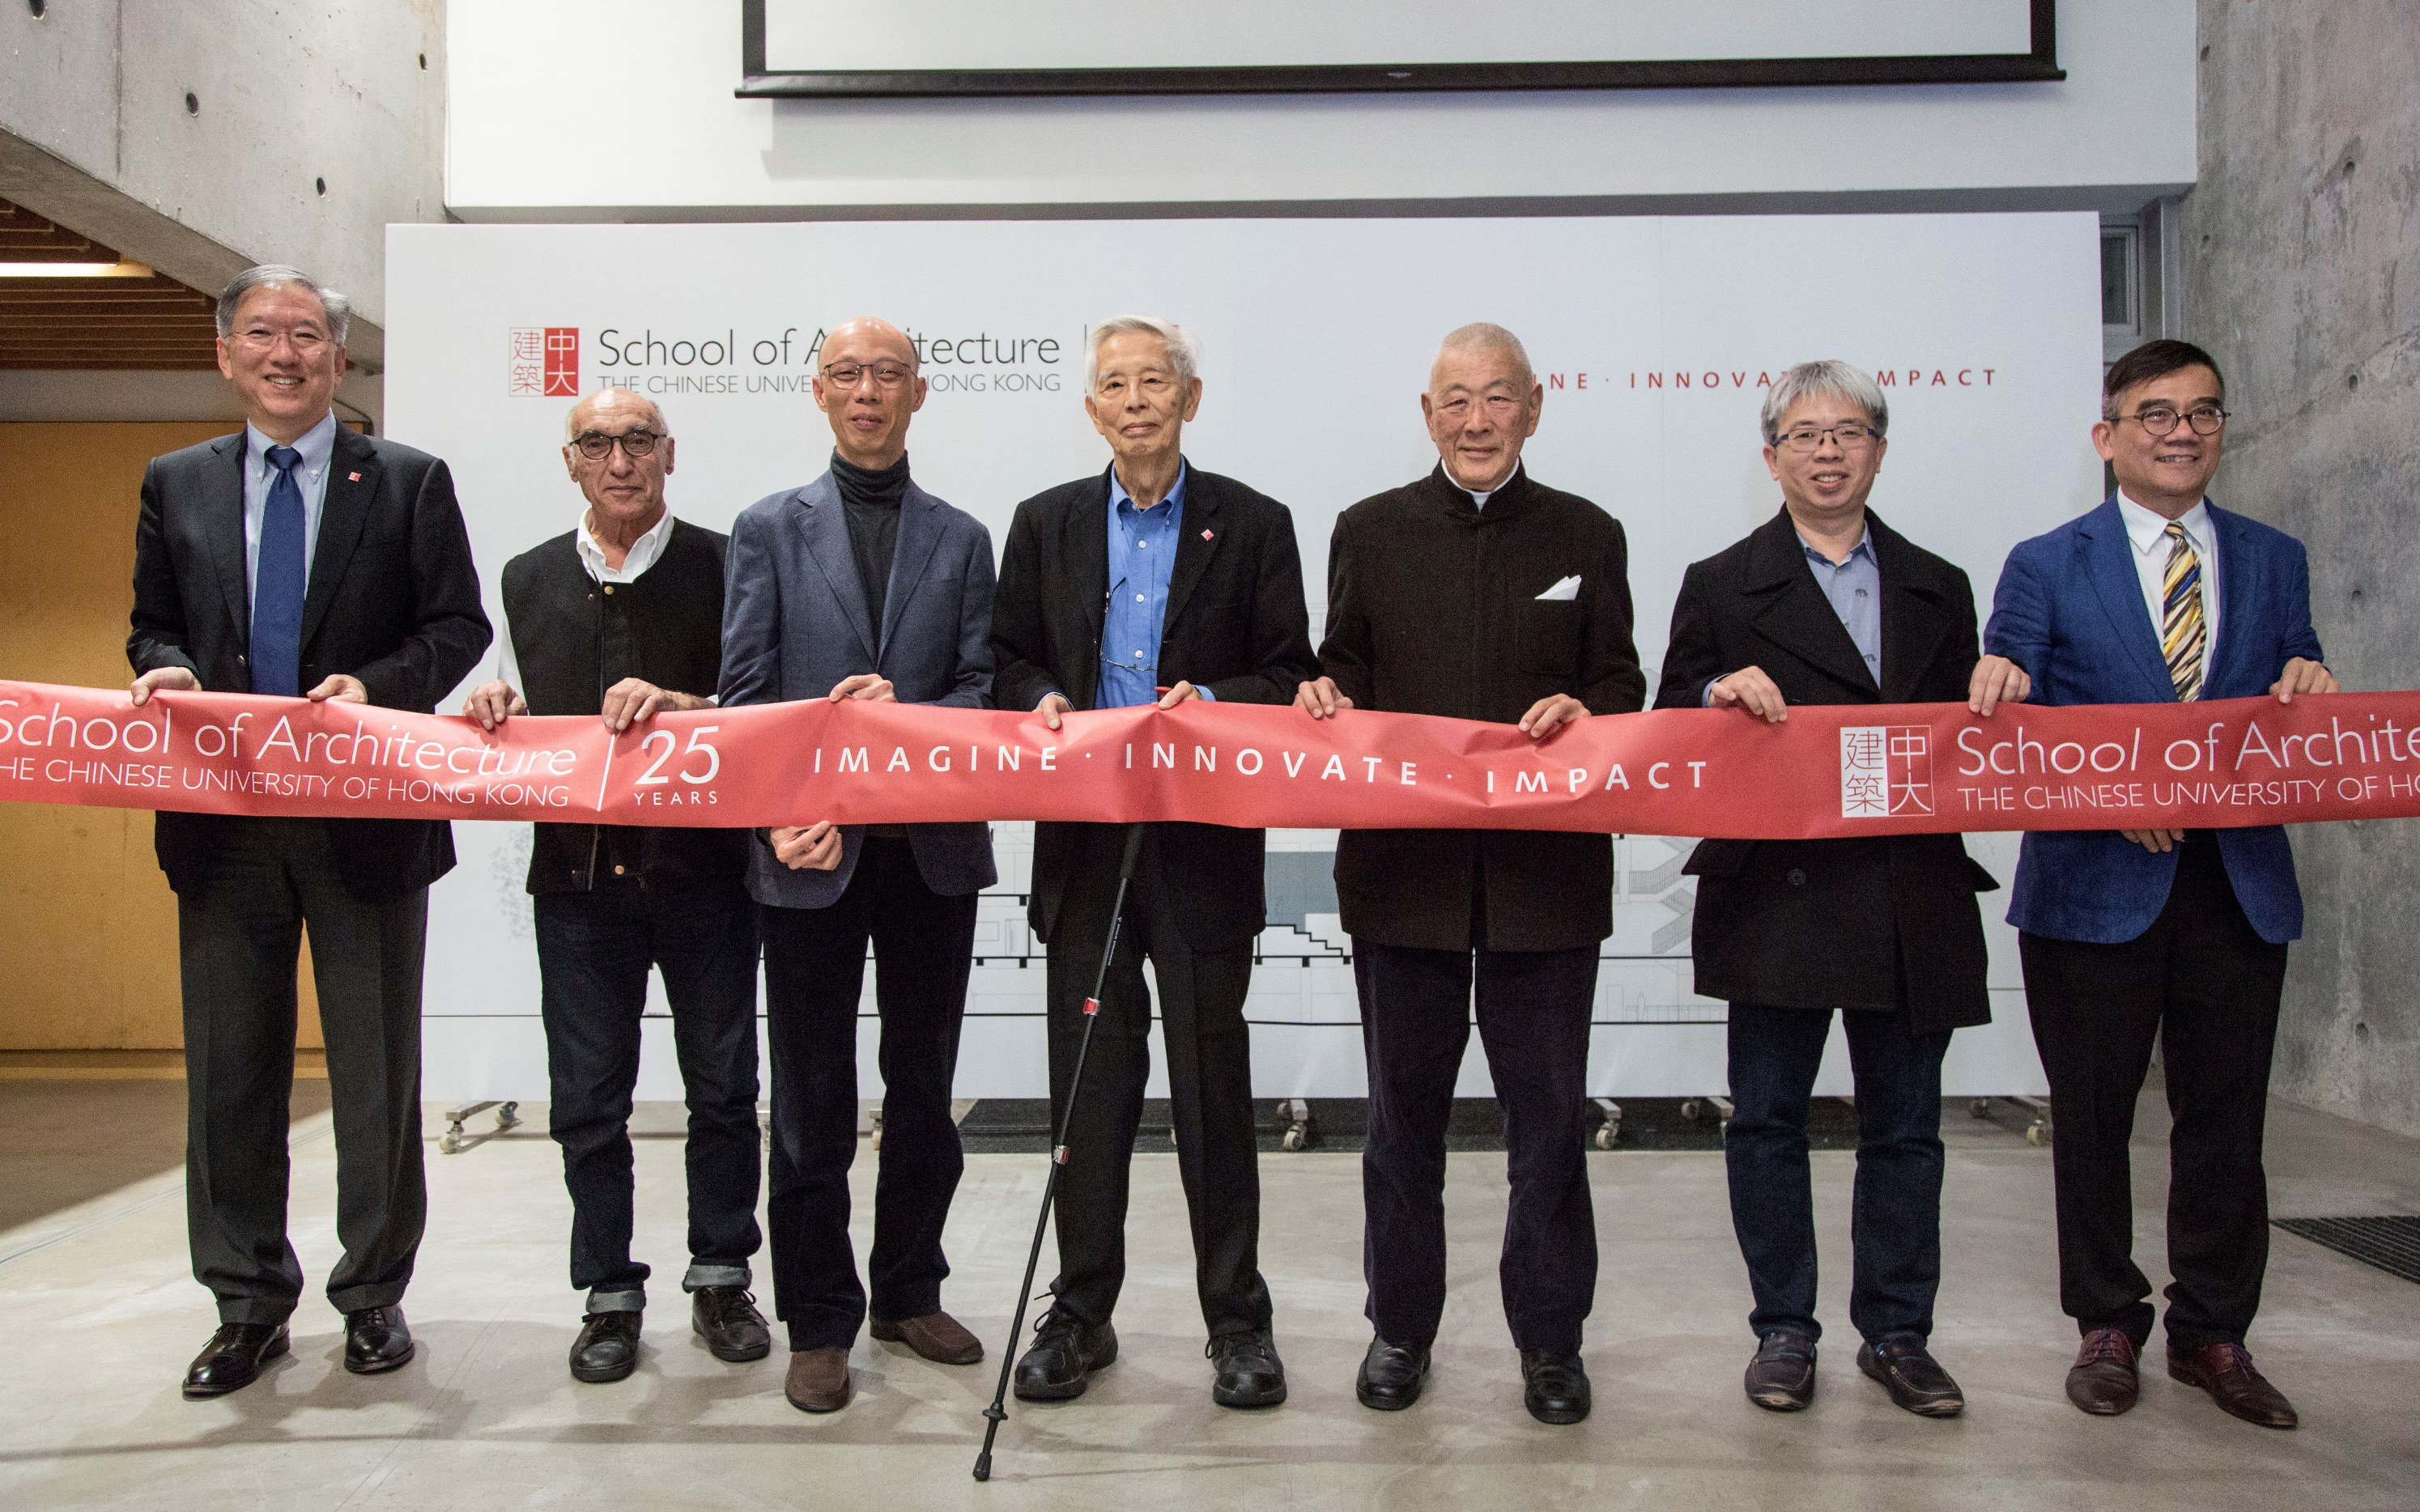 (From left) Prof. Nelson Chen, Director of the School of Architecture, CUHK; Prof. Essy Baniassad, Former Chairman of the Department of Architecture; Mr. Wong Kam-sing, Secretary for the Environment of the HKSAR Government; Prof. Tunney Lee, Founding Chairman of the CUHK architecture programme; Mr. James Kinoshita, renowned architect and donor of the Kinoshita Lectures in Architecture; Prof. Chiu Chi-yue, Dean of Social Science, CUHK; Prof. Ho Puay Peng, Former Department Chairman and School Director of the CUHK architecture programme.